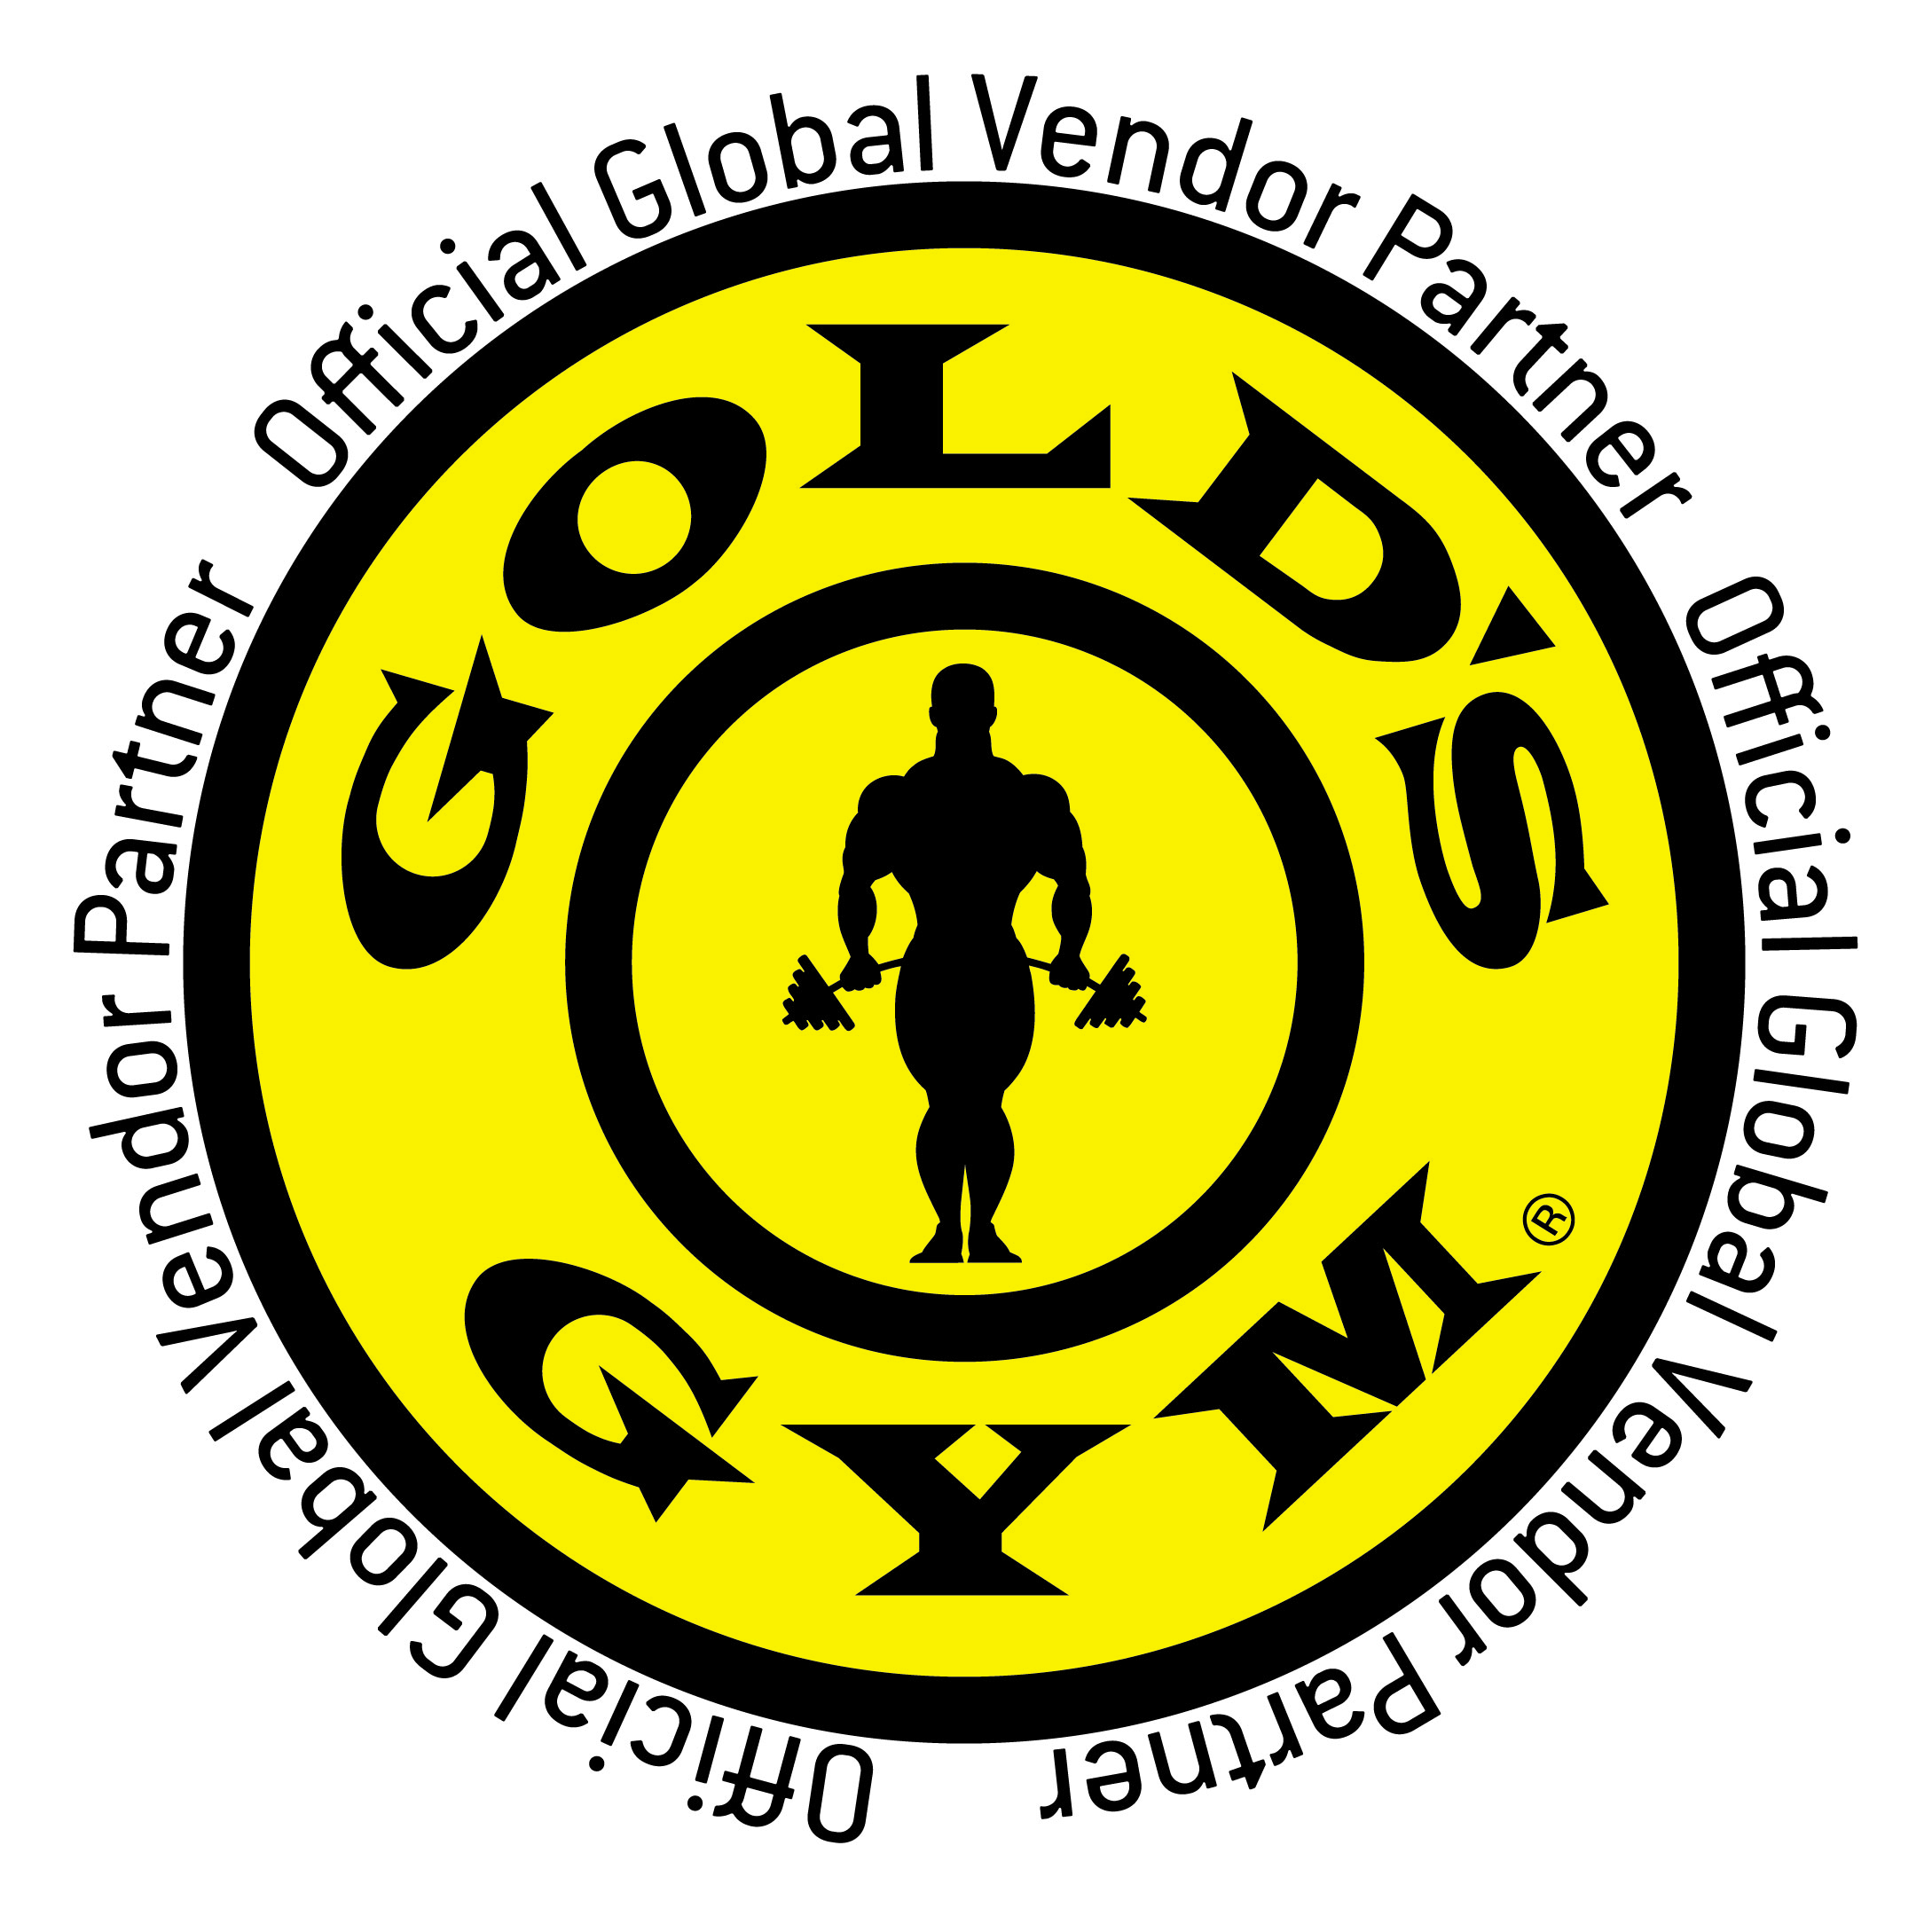 Official Global Vendor